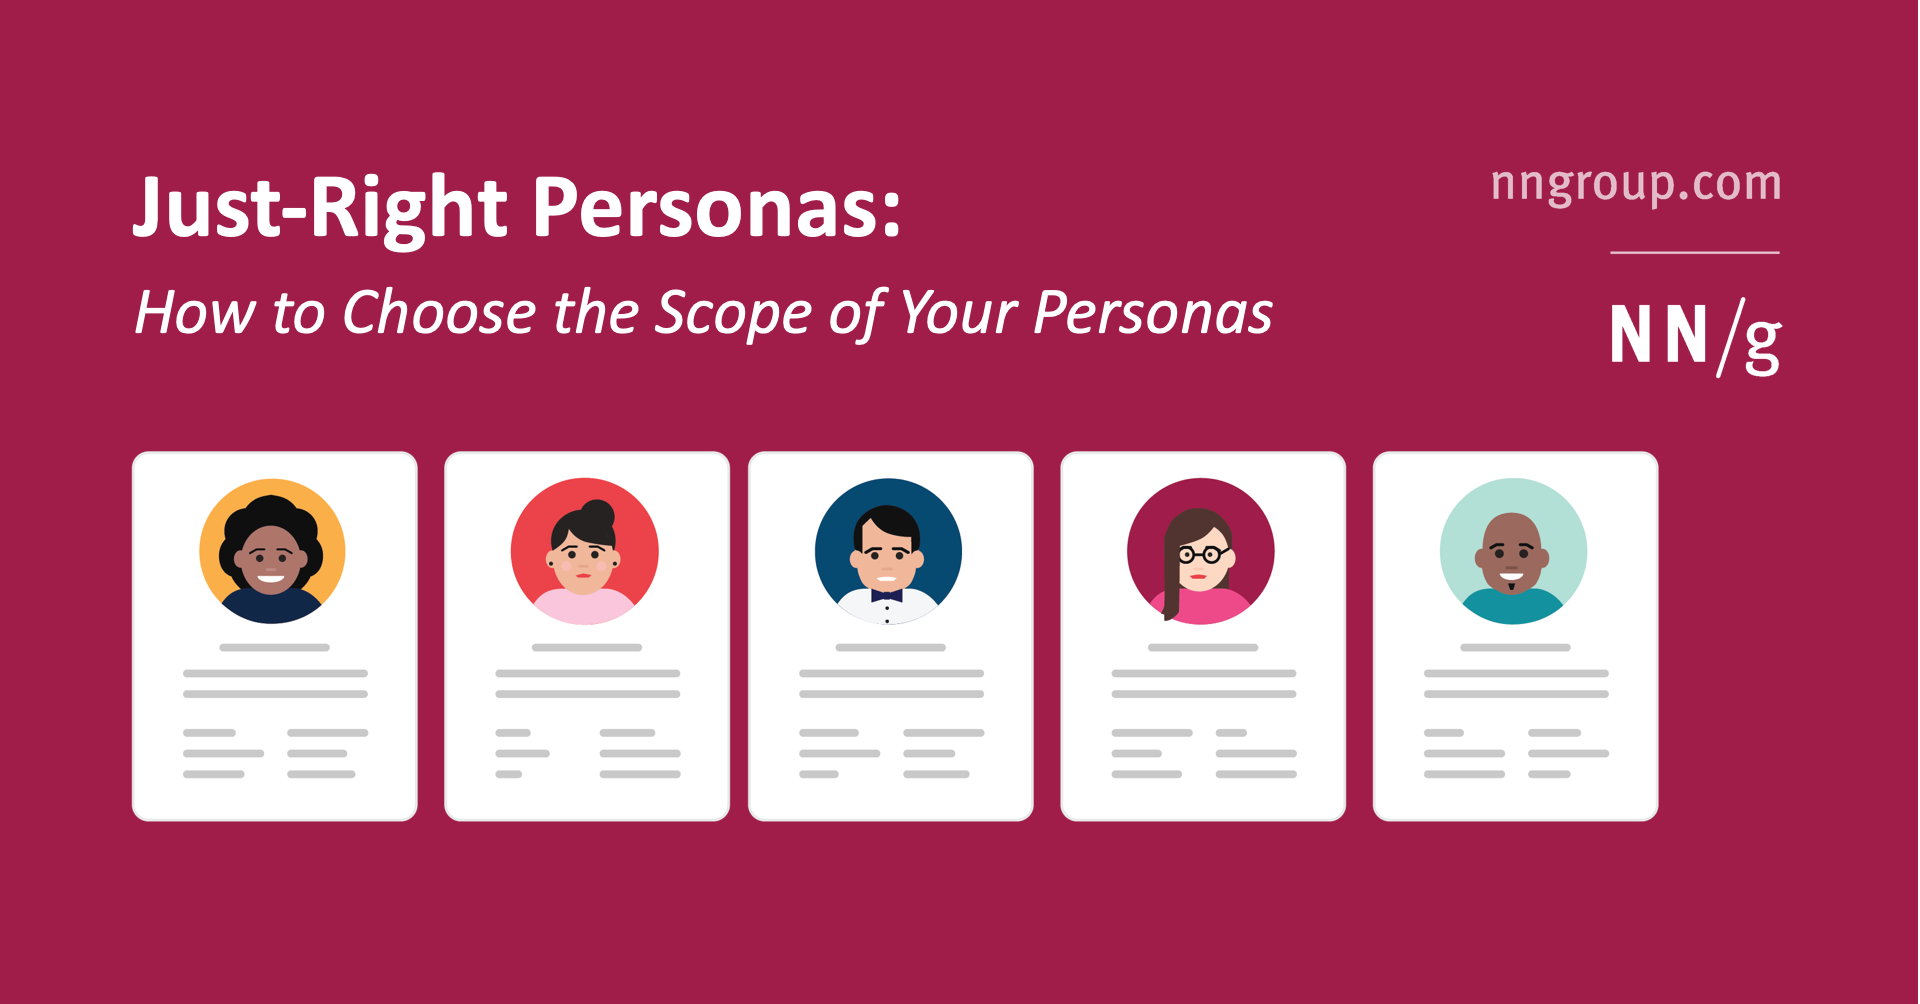 https://www.nngroup.com/articles/persona-scope/